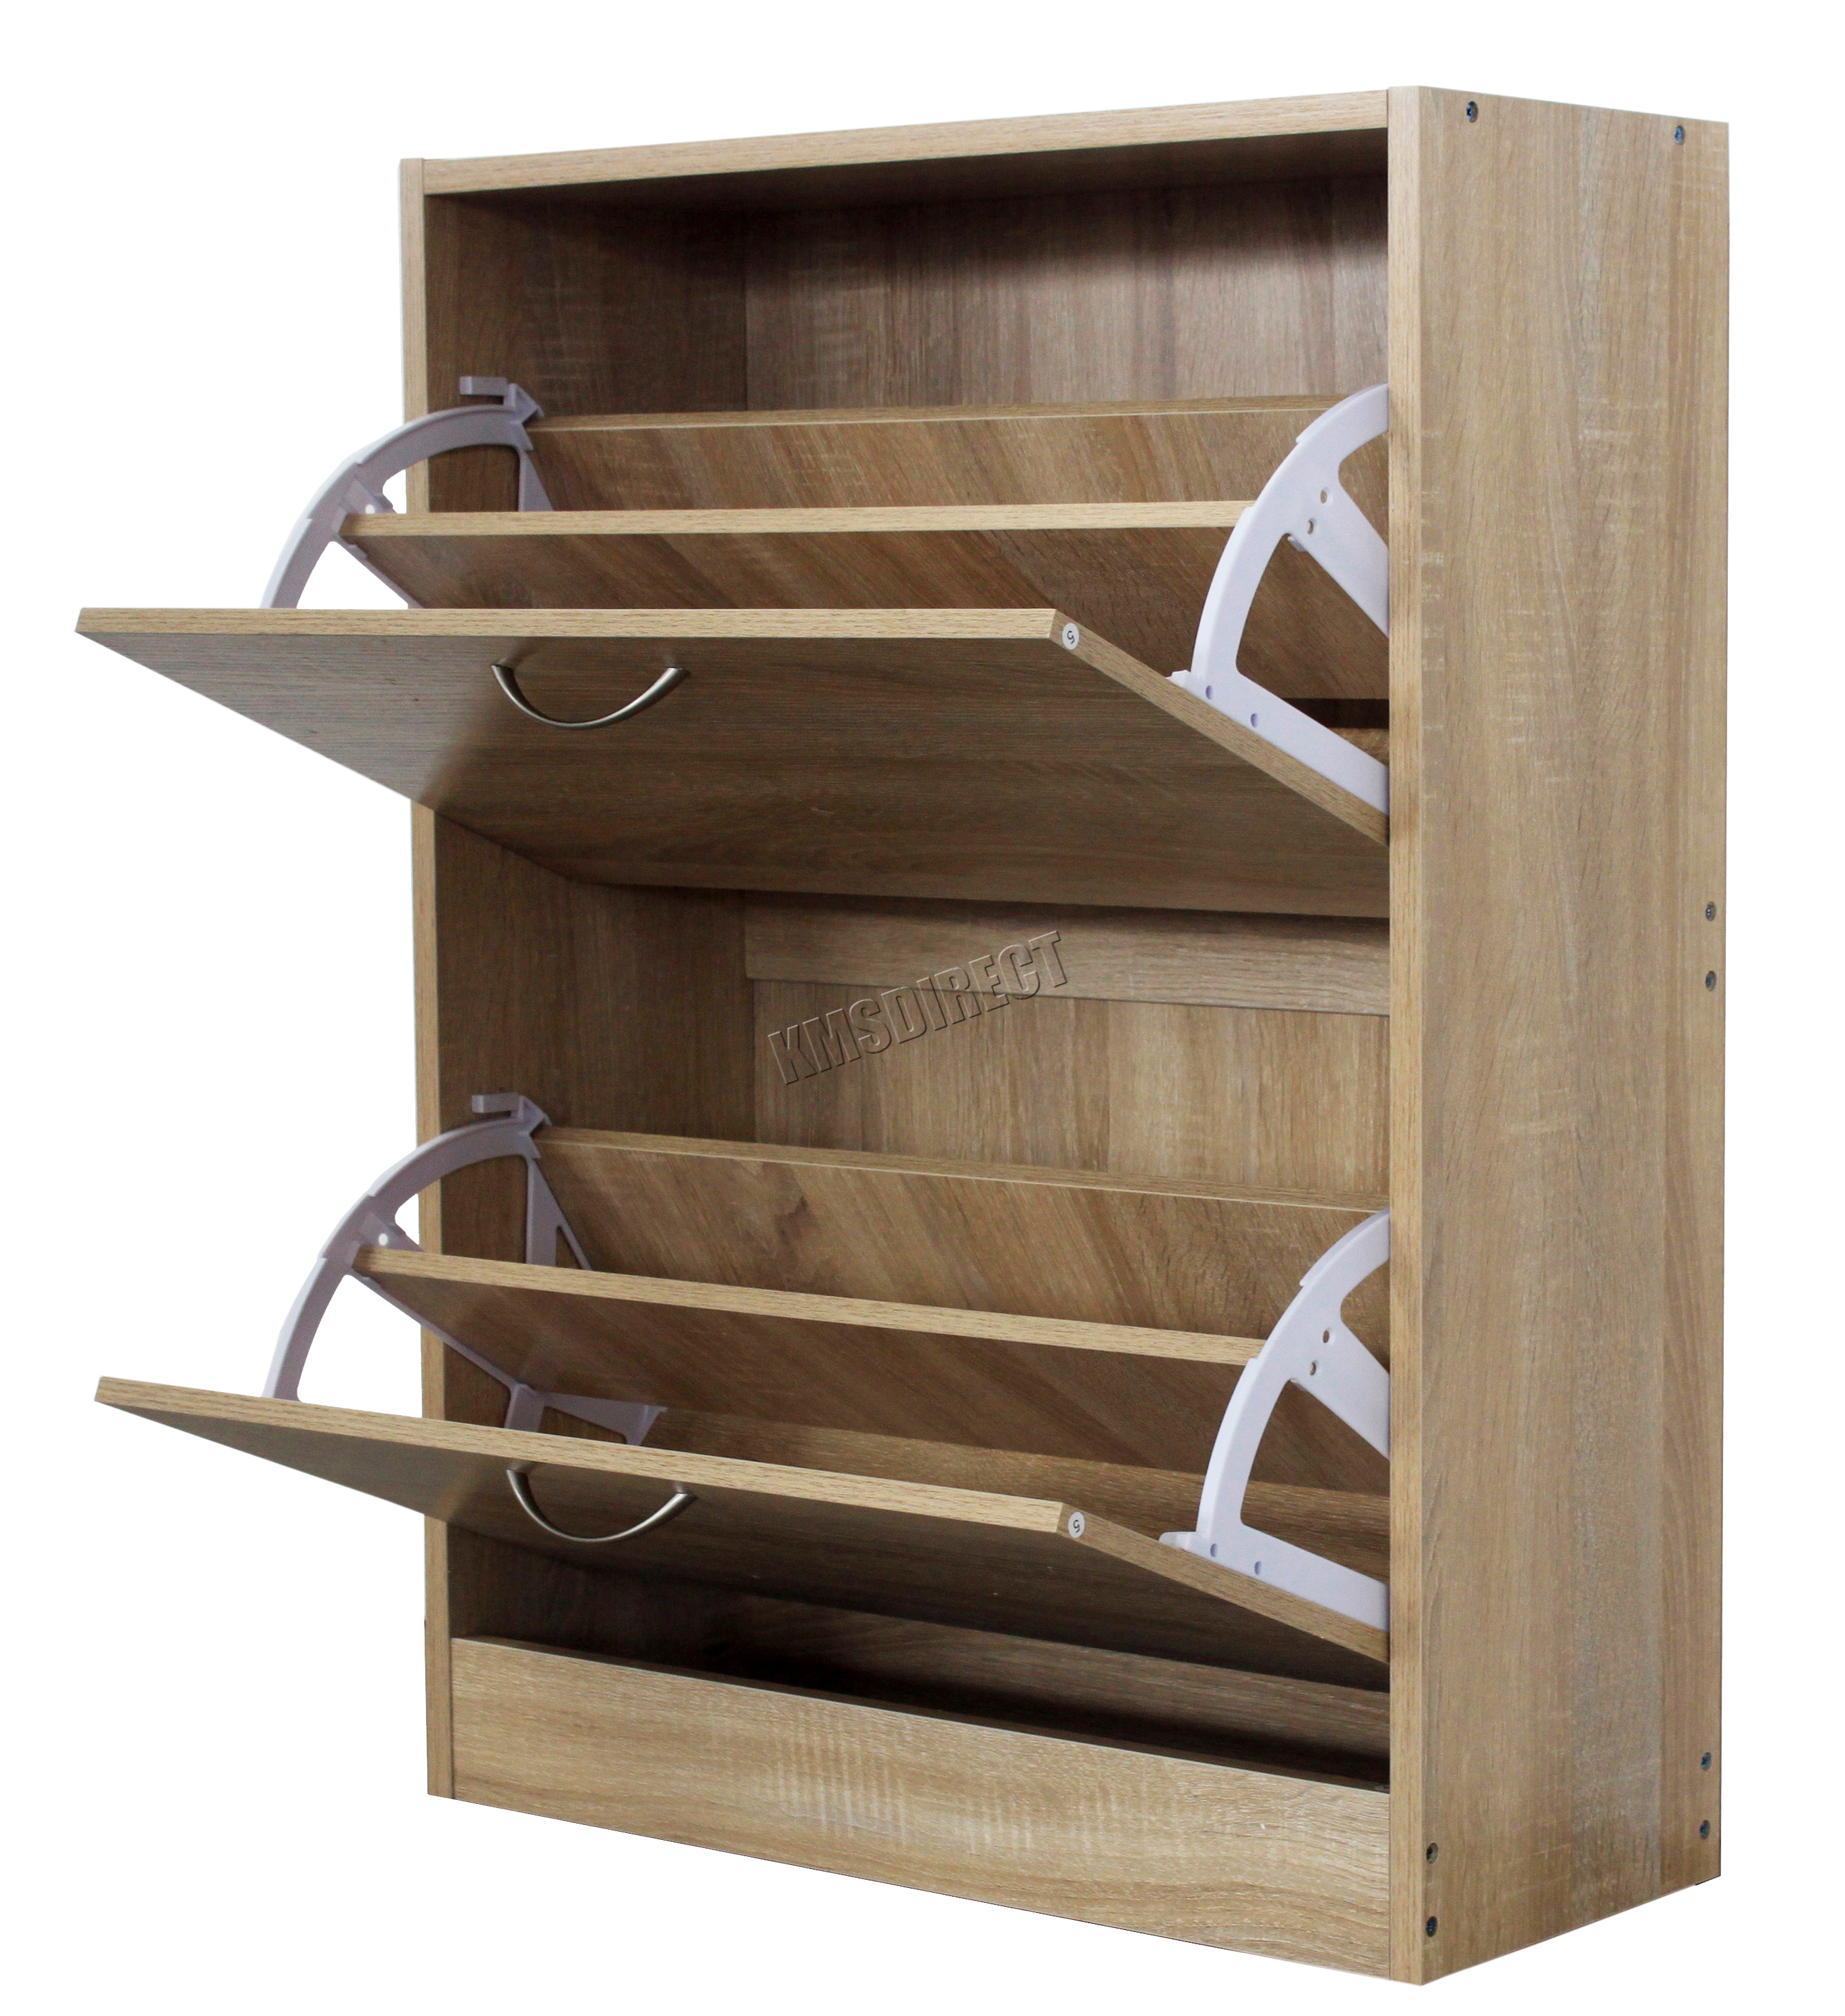 Awesome IPad Wood Shoe Rack Plans  EasyToFollow How To Build A